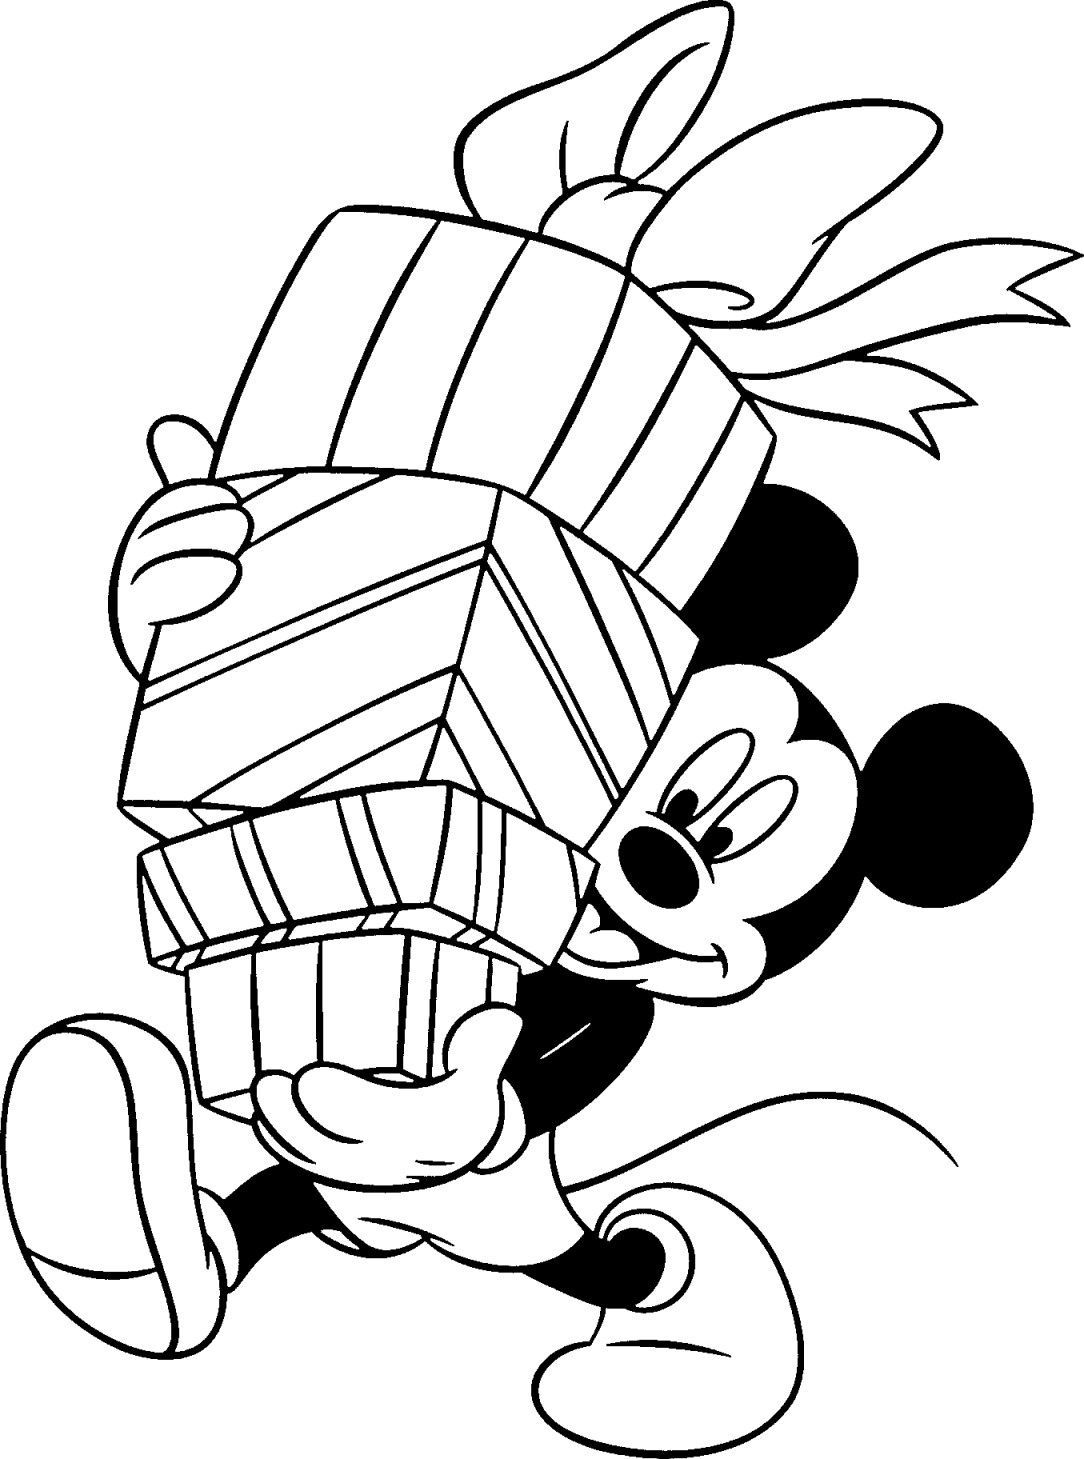 Mickey Mouse Holiday Coloring Pages Mickey Mouse Holiday Coloring Pages Free Disney Coloring Pages Cartoon Coloring Pages Mickey Mouse Coloring Pages